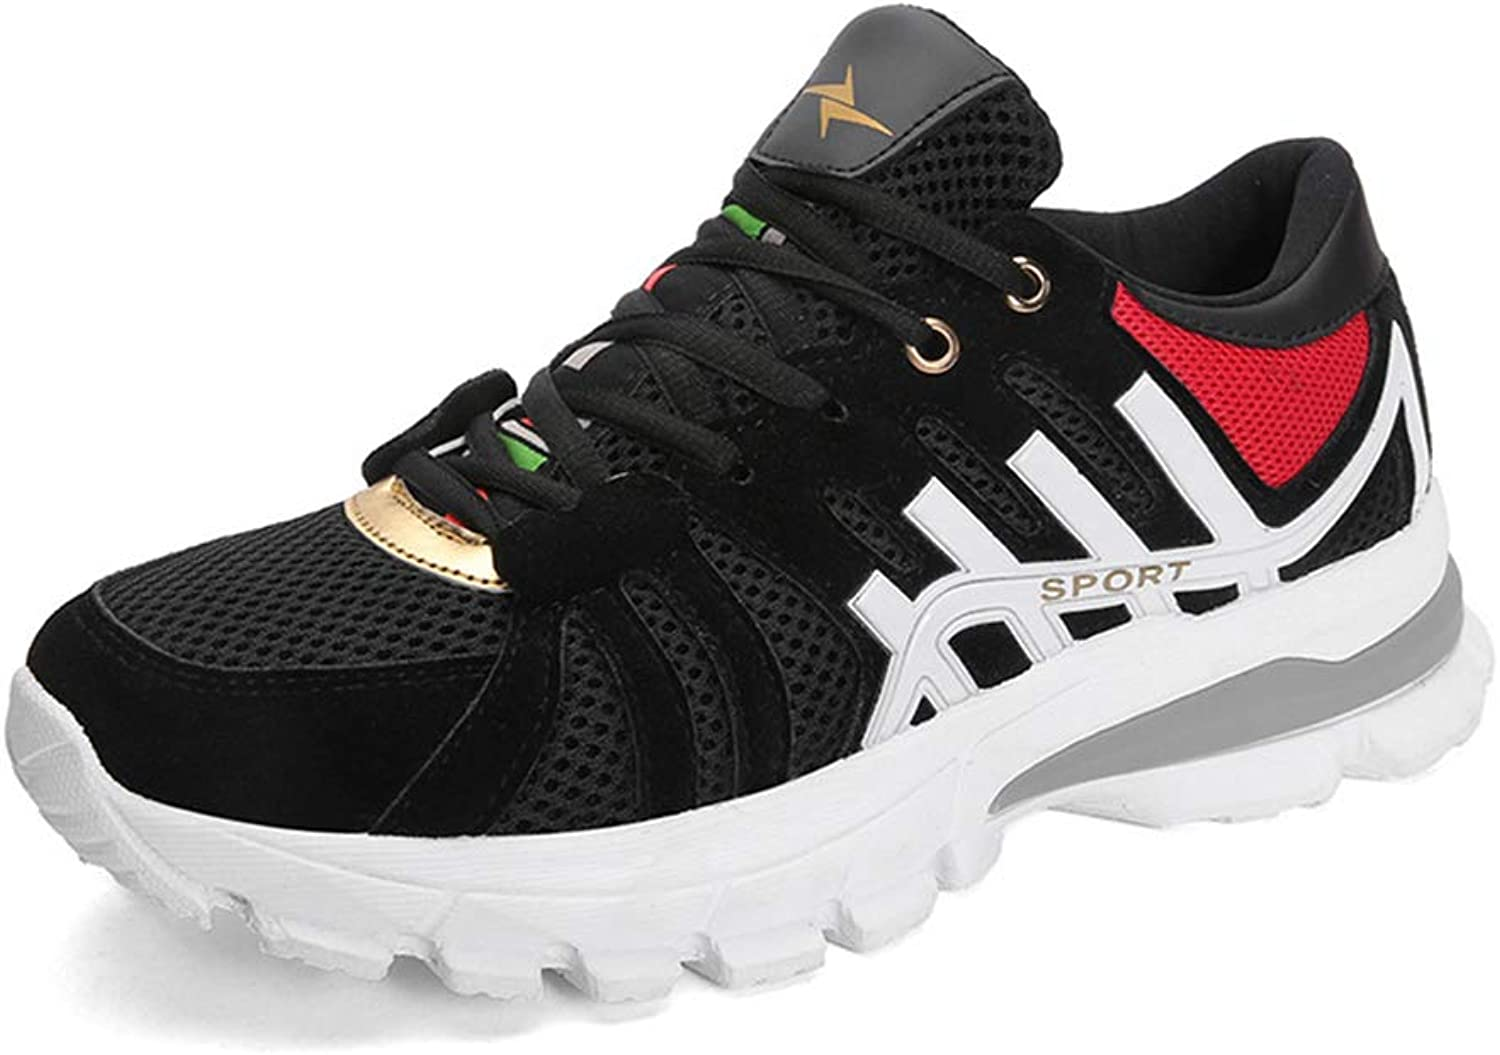 Men's shoes, Fashion Comfortable Casual shoes Travel shoes Spring Fall New Wild Breathable Sneakers Training shoes,B,43